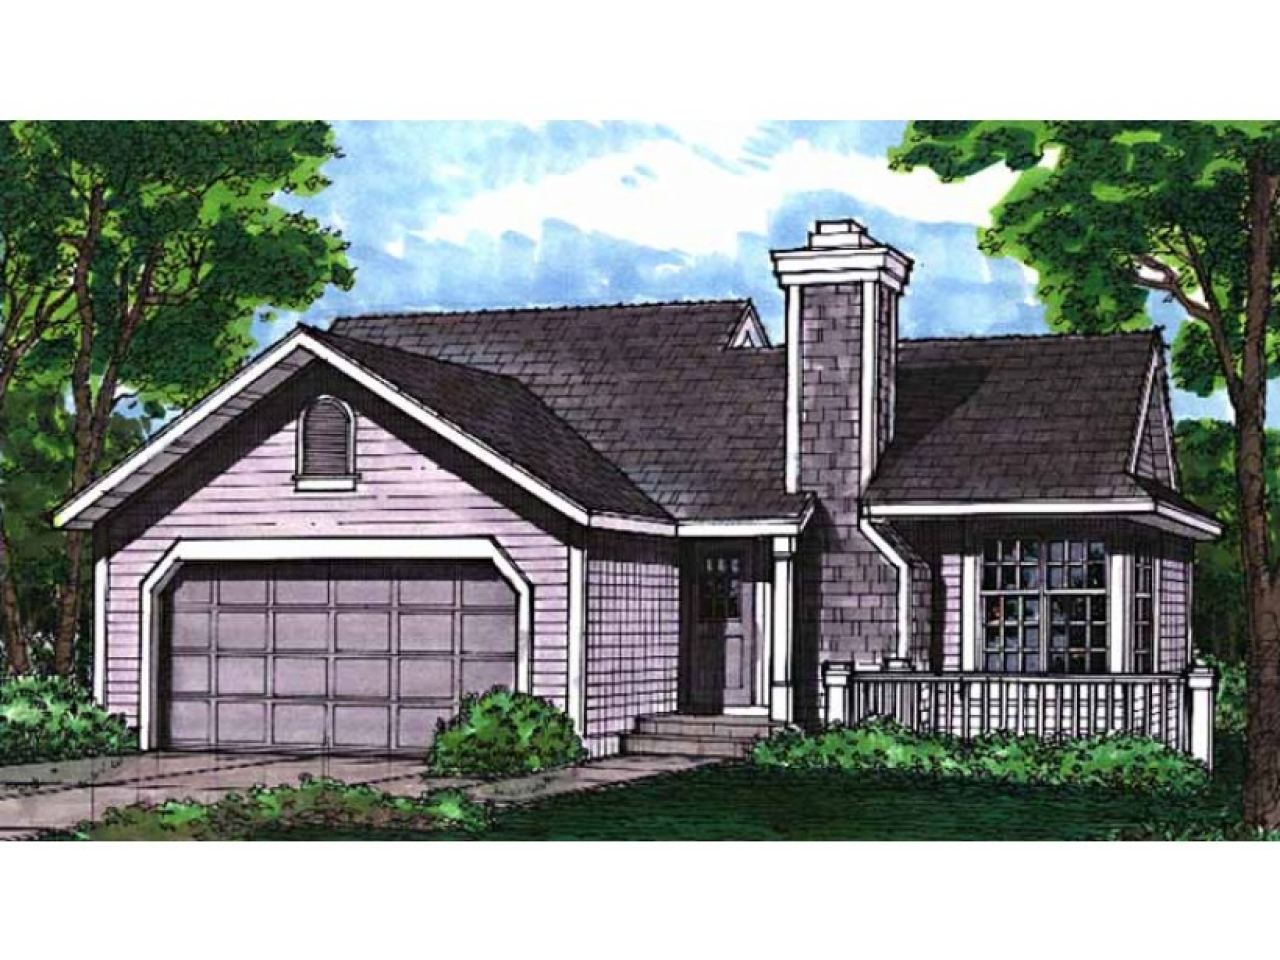 Eplans cottage house plan two bedroom cottage 988 square for Eplans house plans